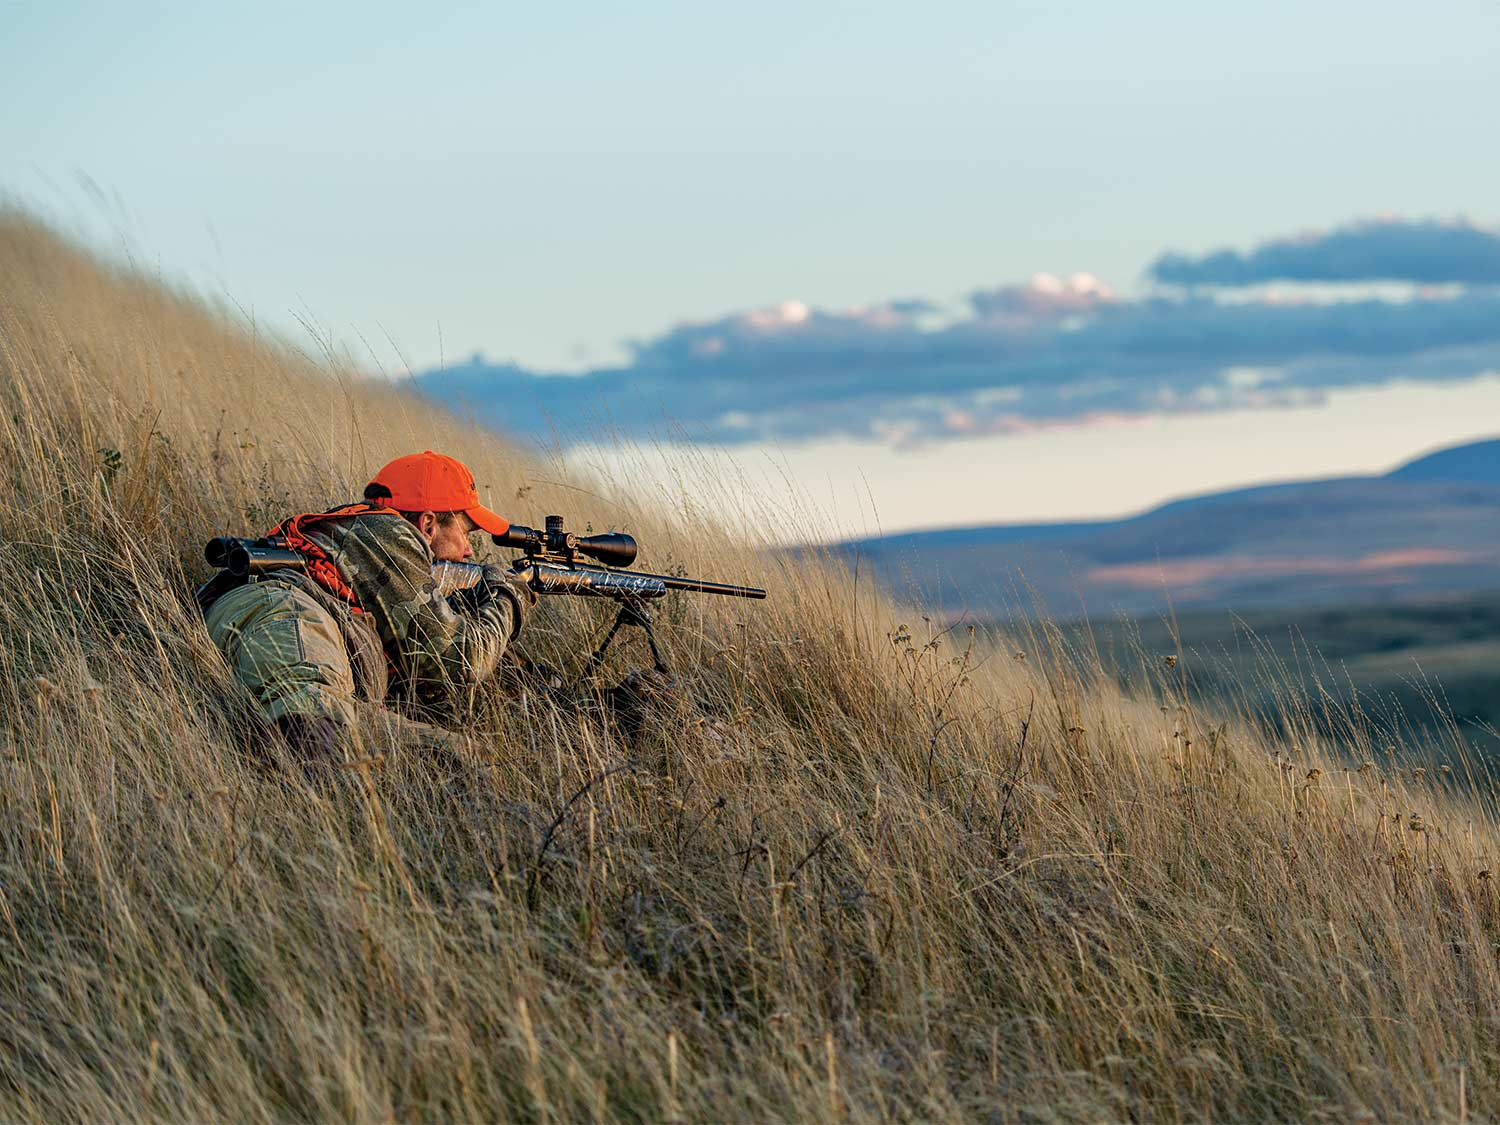 A hunter aims a rifle on the hillside.